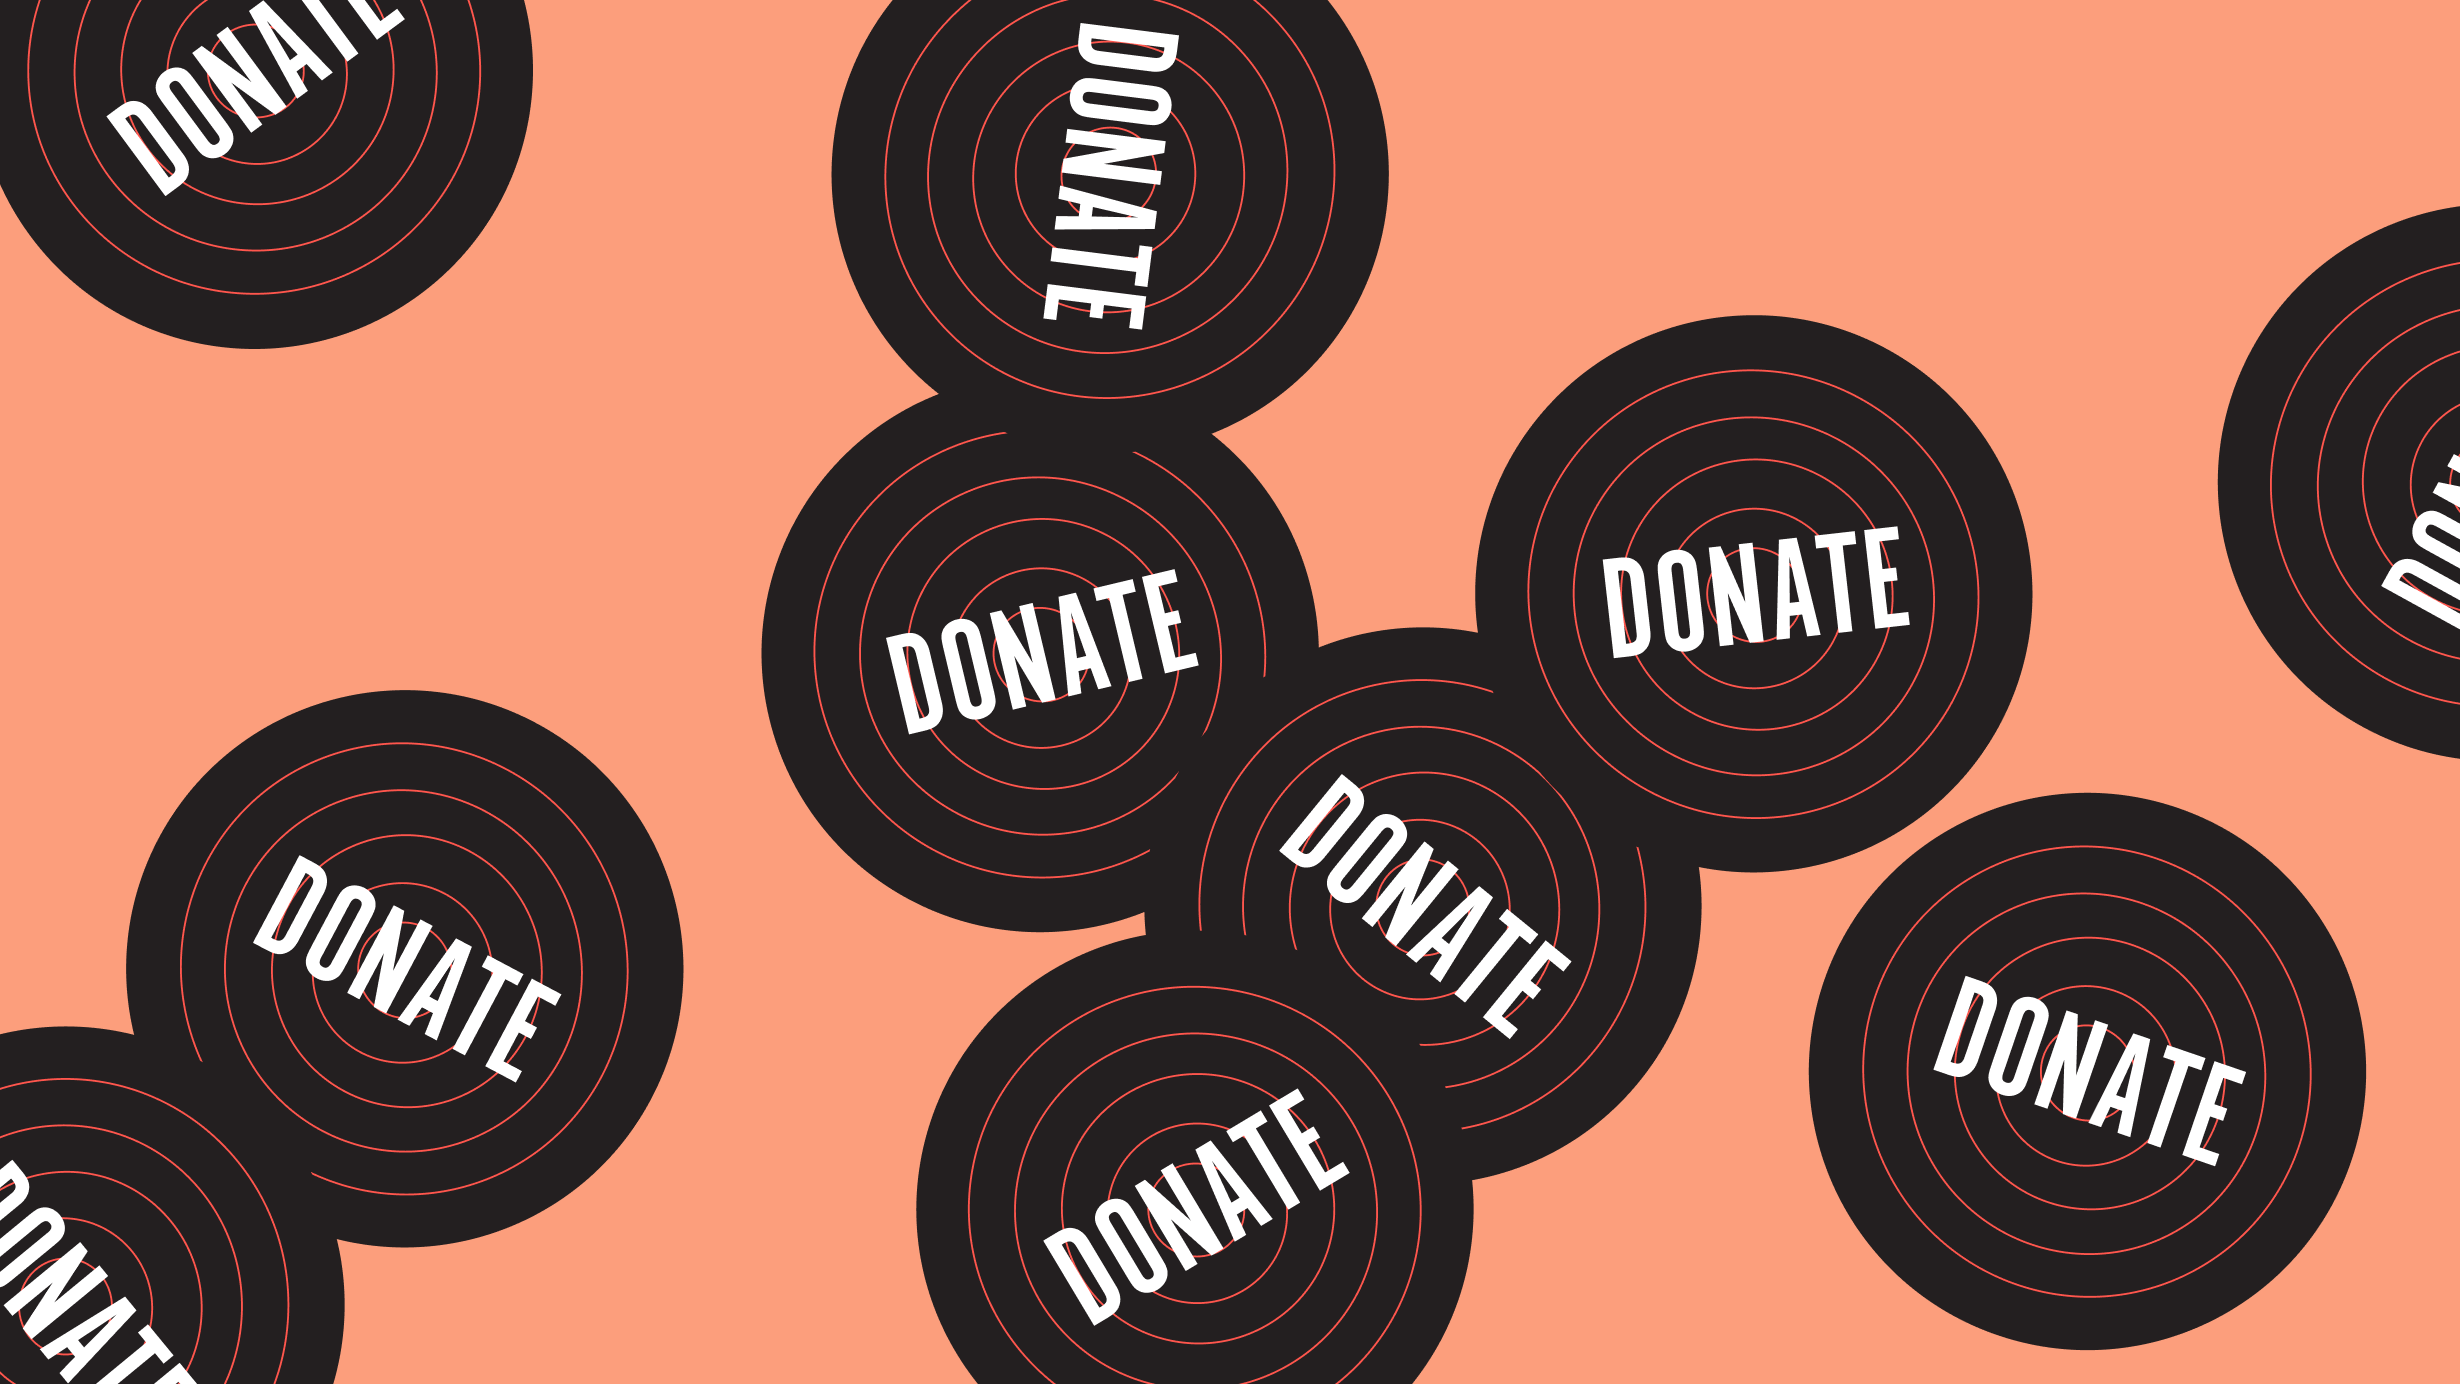 Artwork of multiple black records on an orange background, with 'donate' written on each